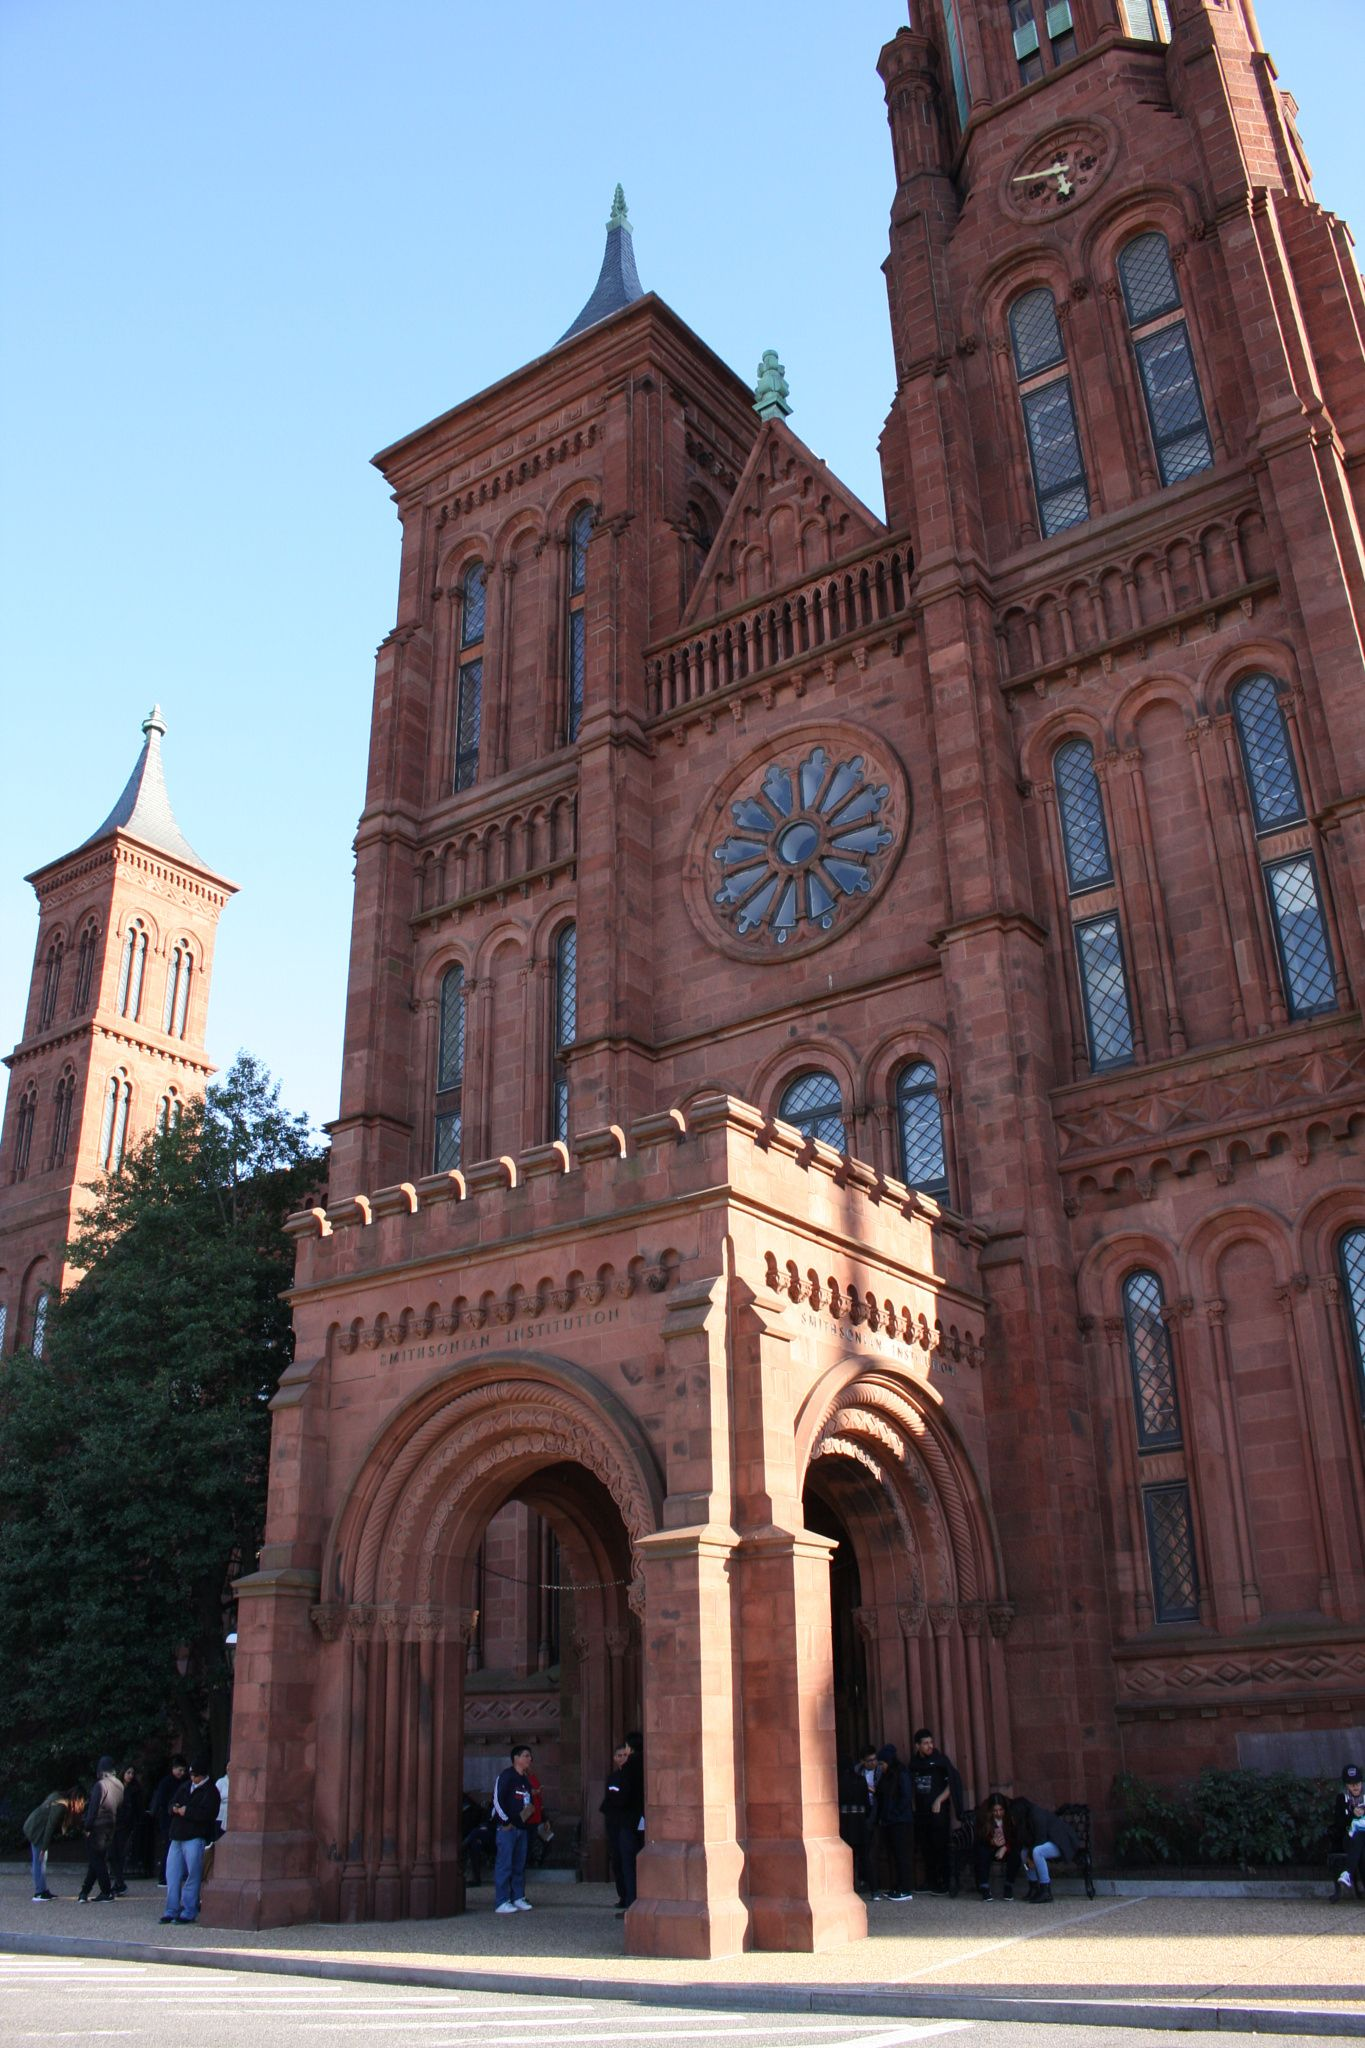 Walking by Smithsonian Institution - By Marlene Corte